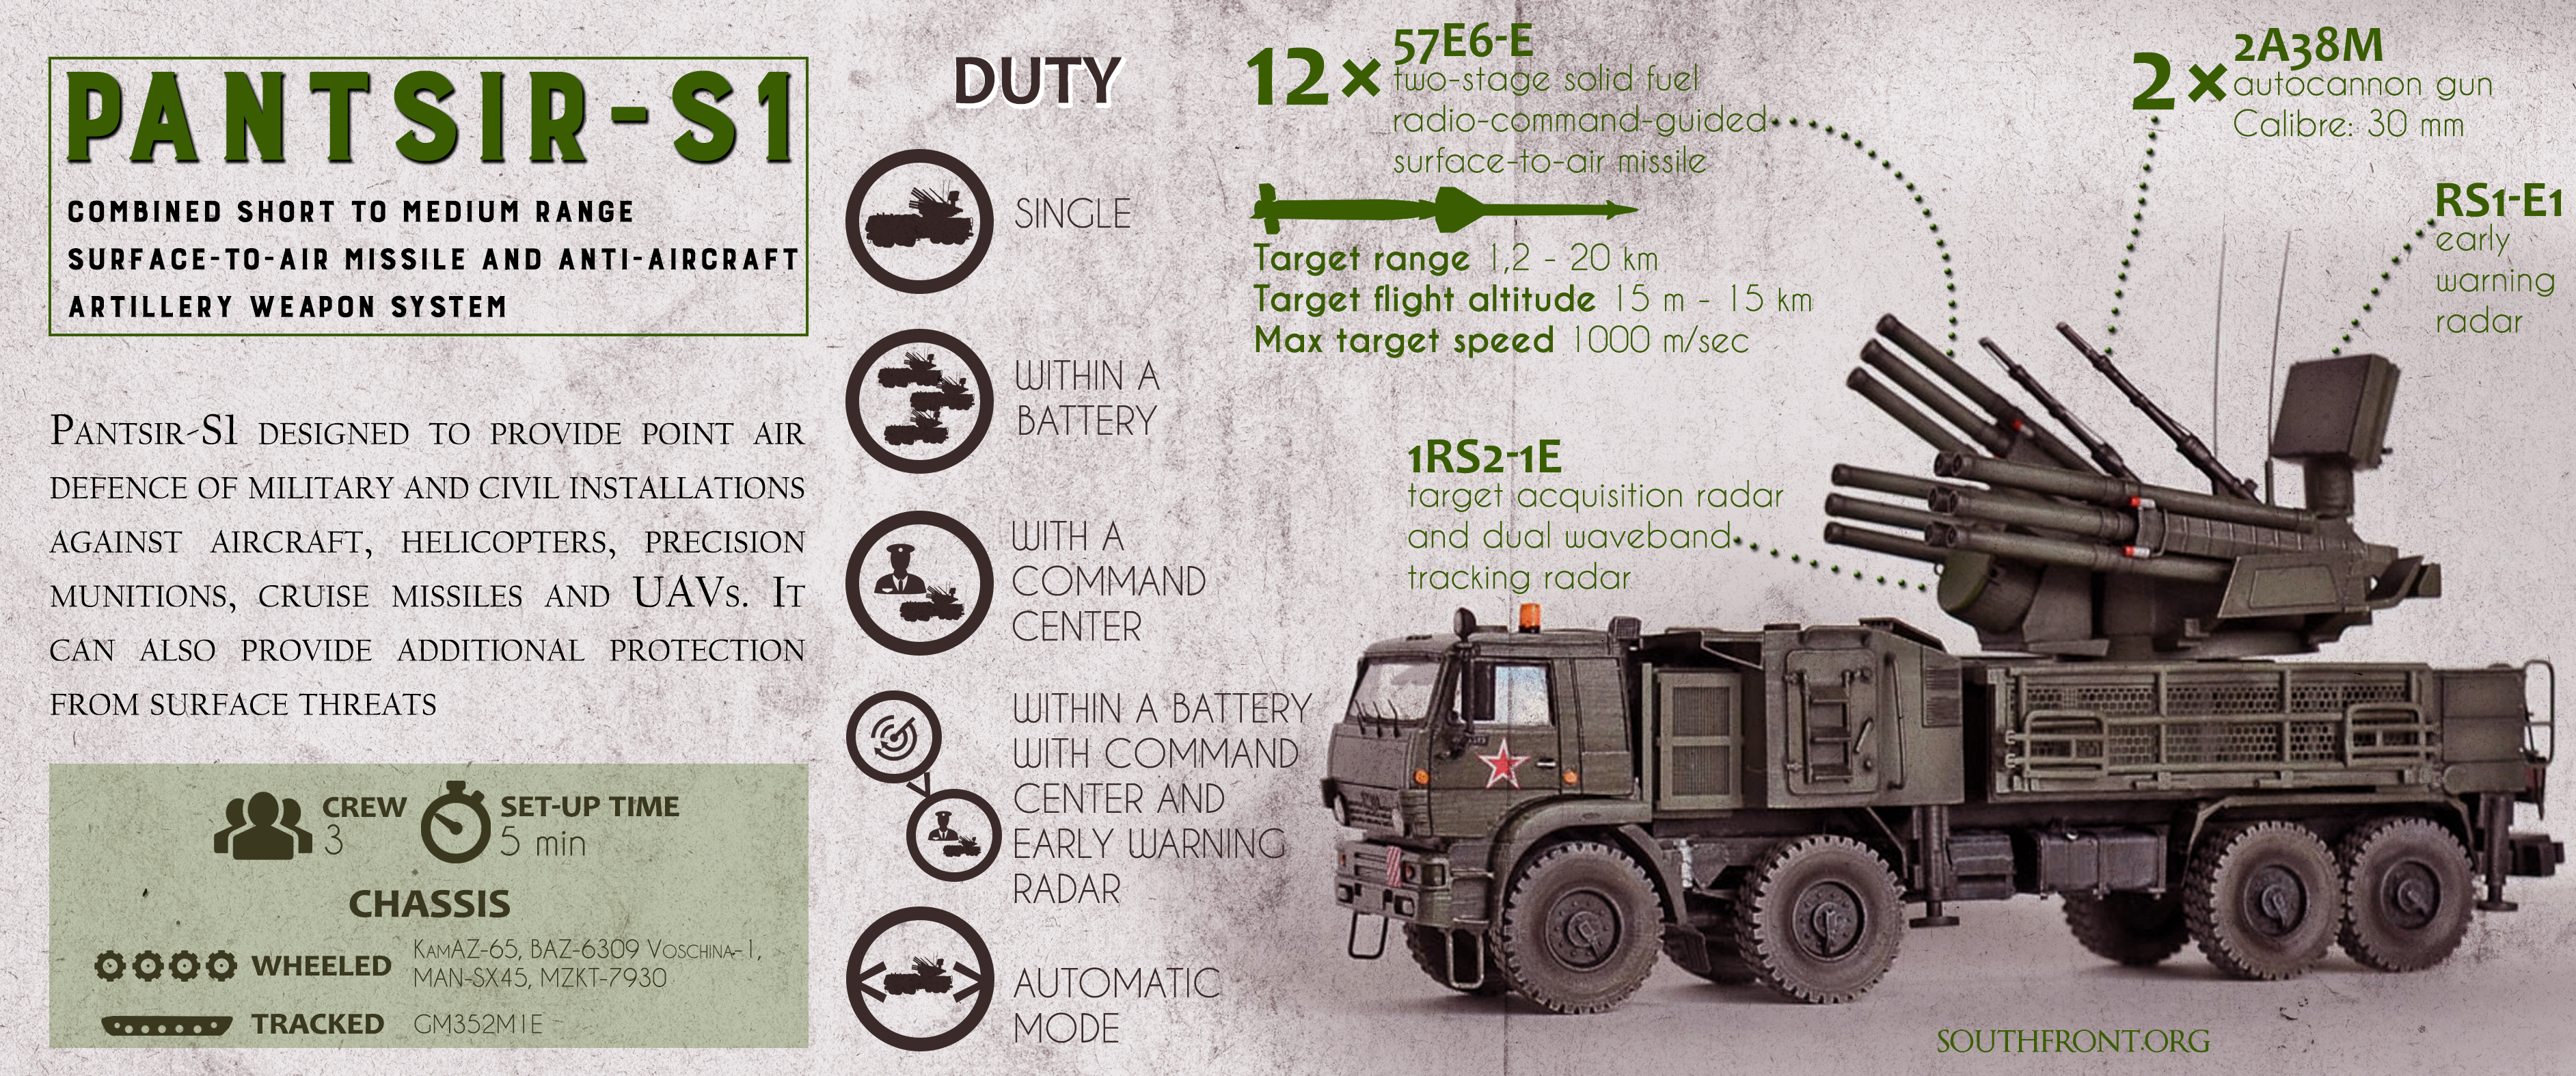 Pantsir-S1: Russian-made Surface-to-Air Missile and Anti-Aircraft Artillery Weapon System (Infographics)